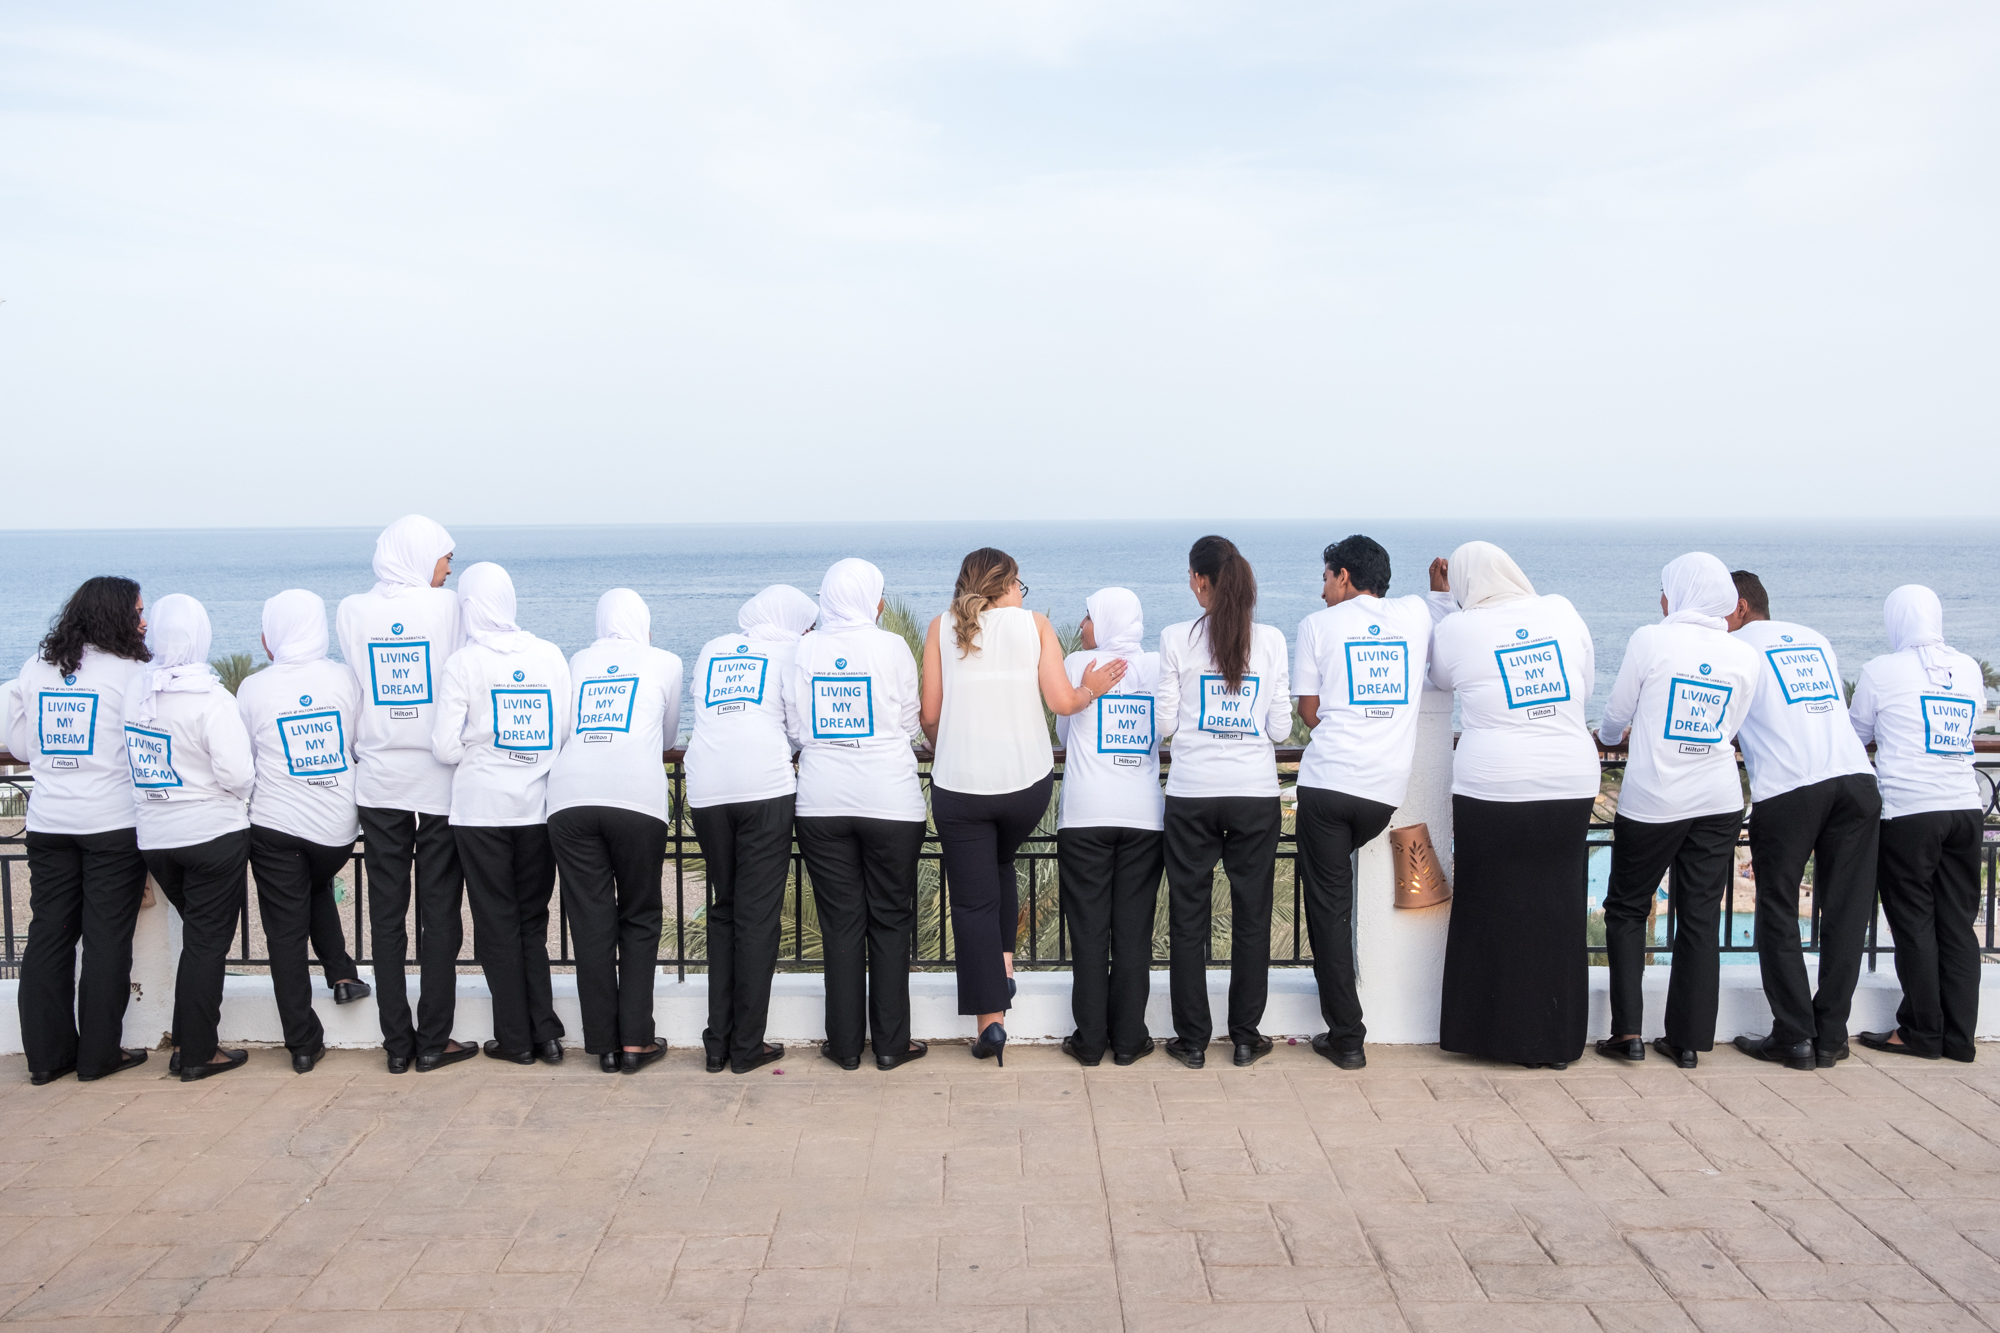 After holding a ceremony to honor the training program participants, Ingy and the original 15 training participants pose for a portrait at the resort near the Red Sea.